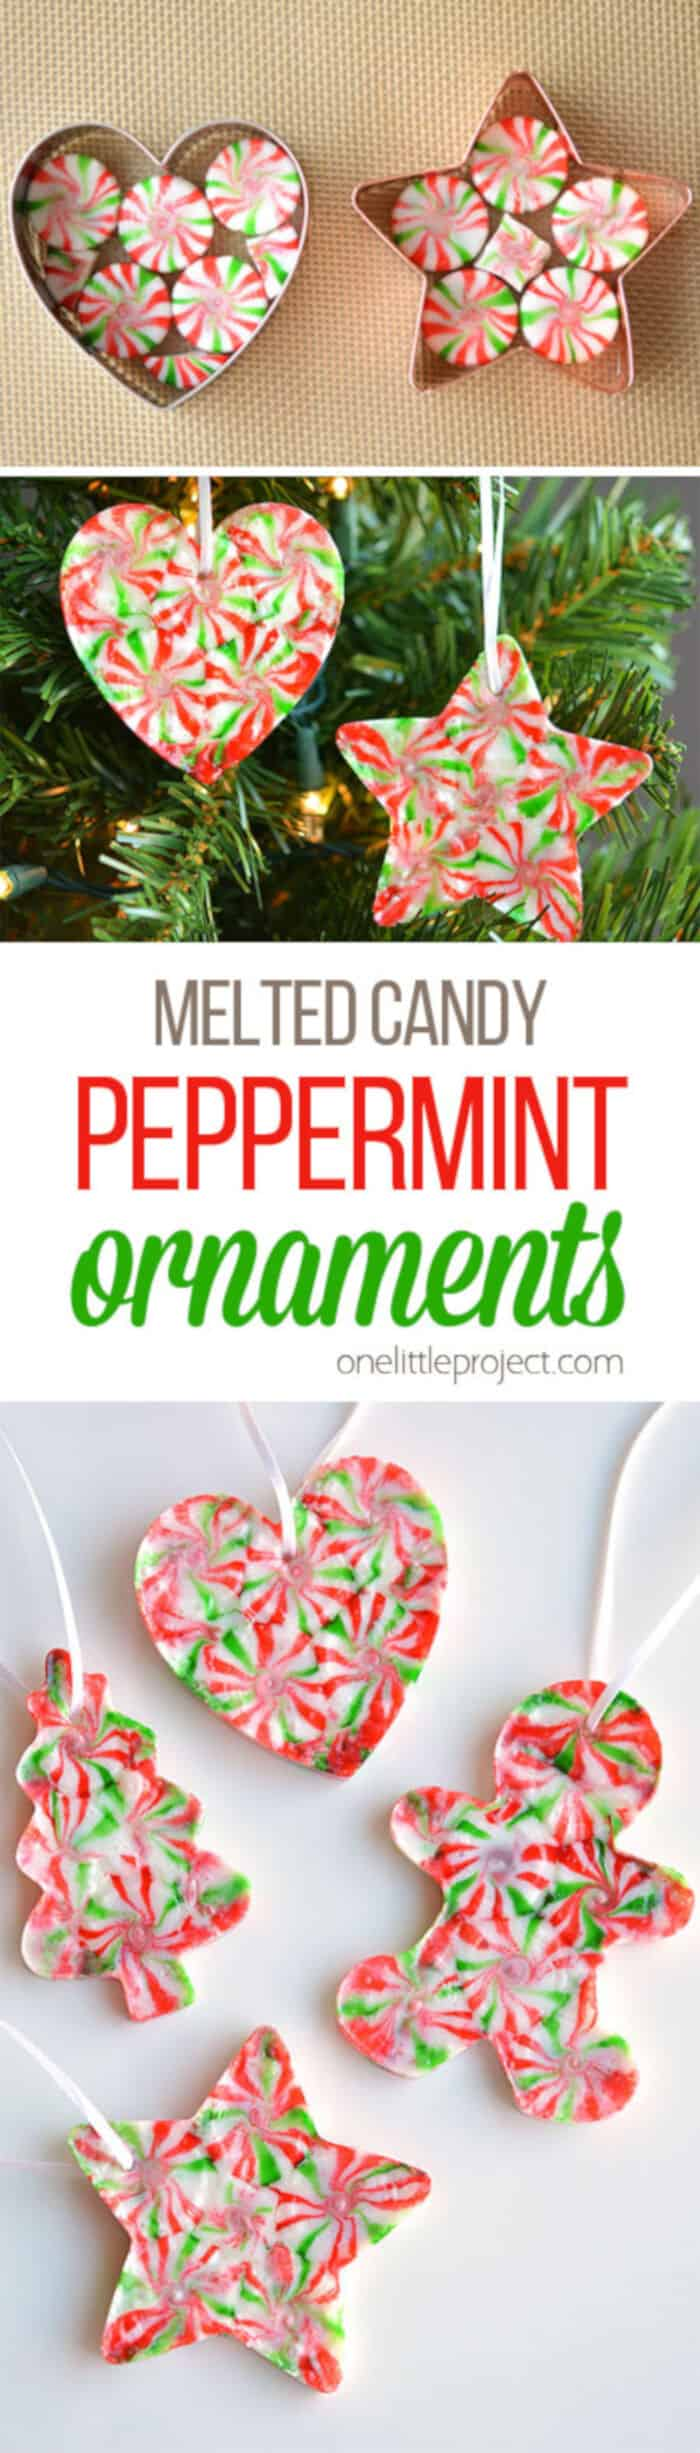 Melted Peppermint Candy Ornaments by One Little Project